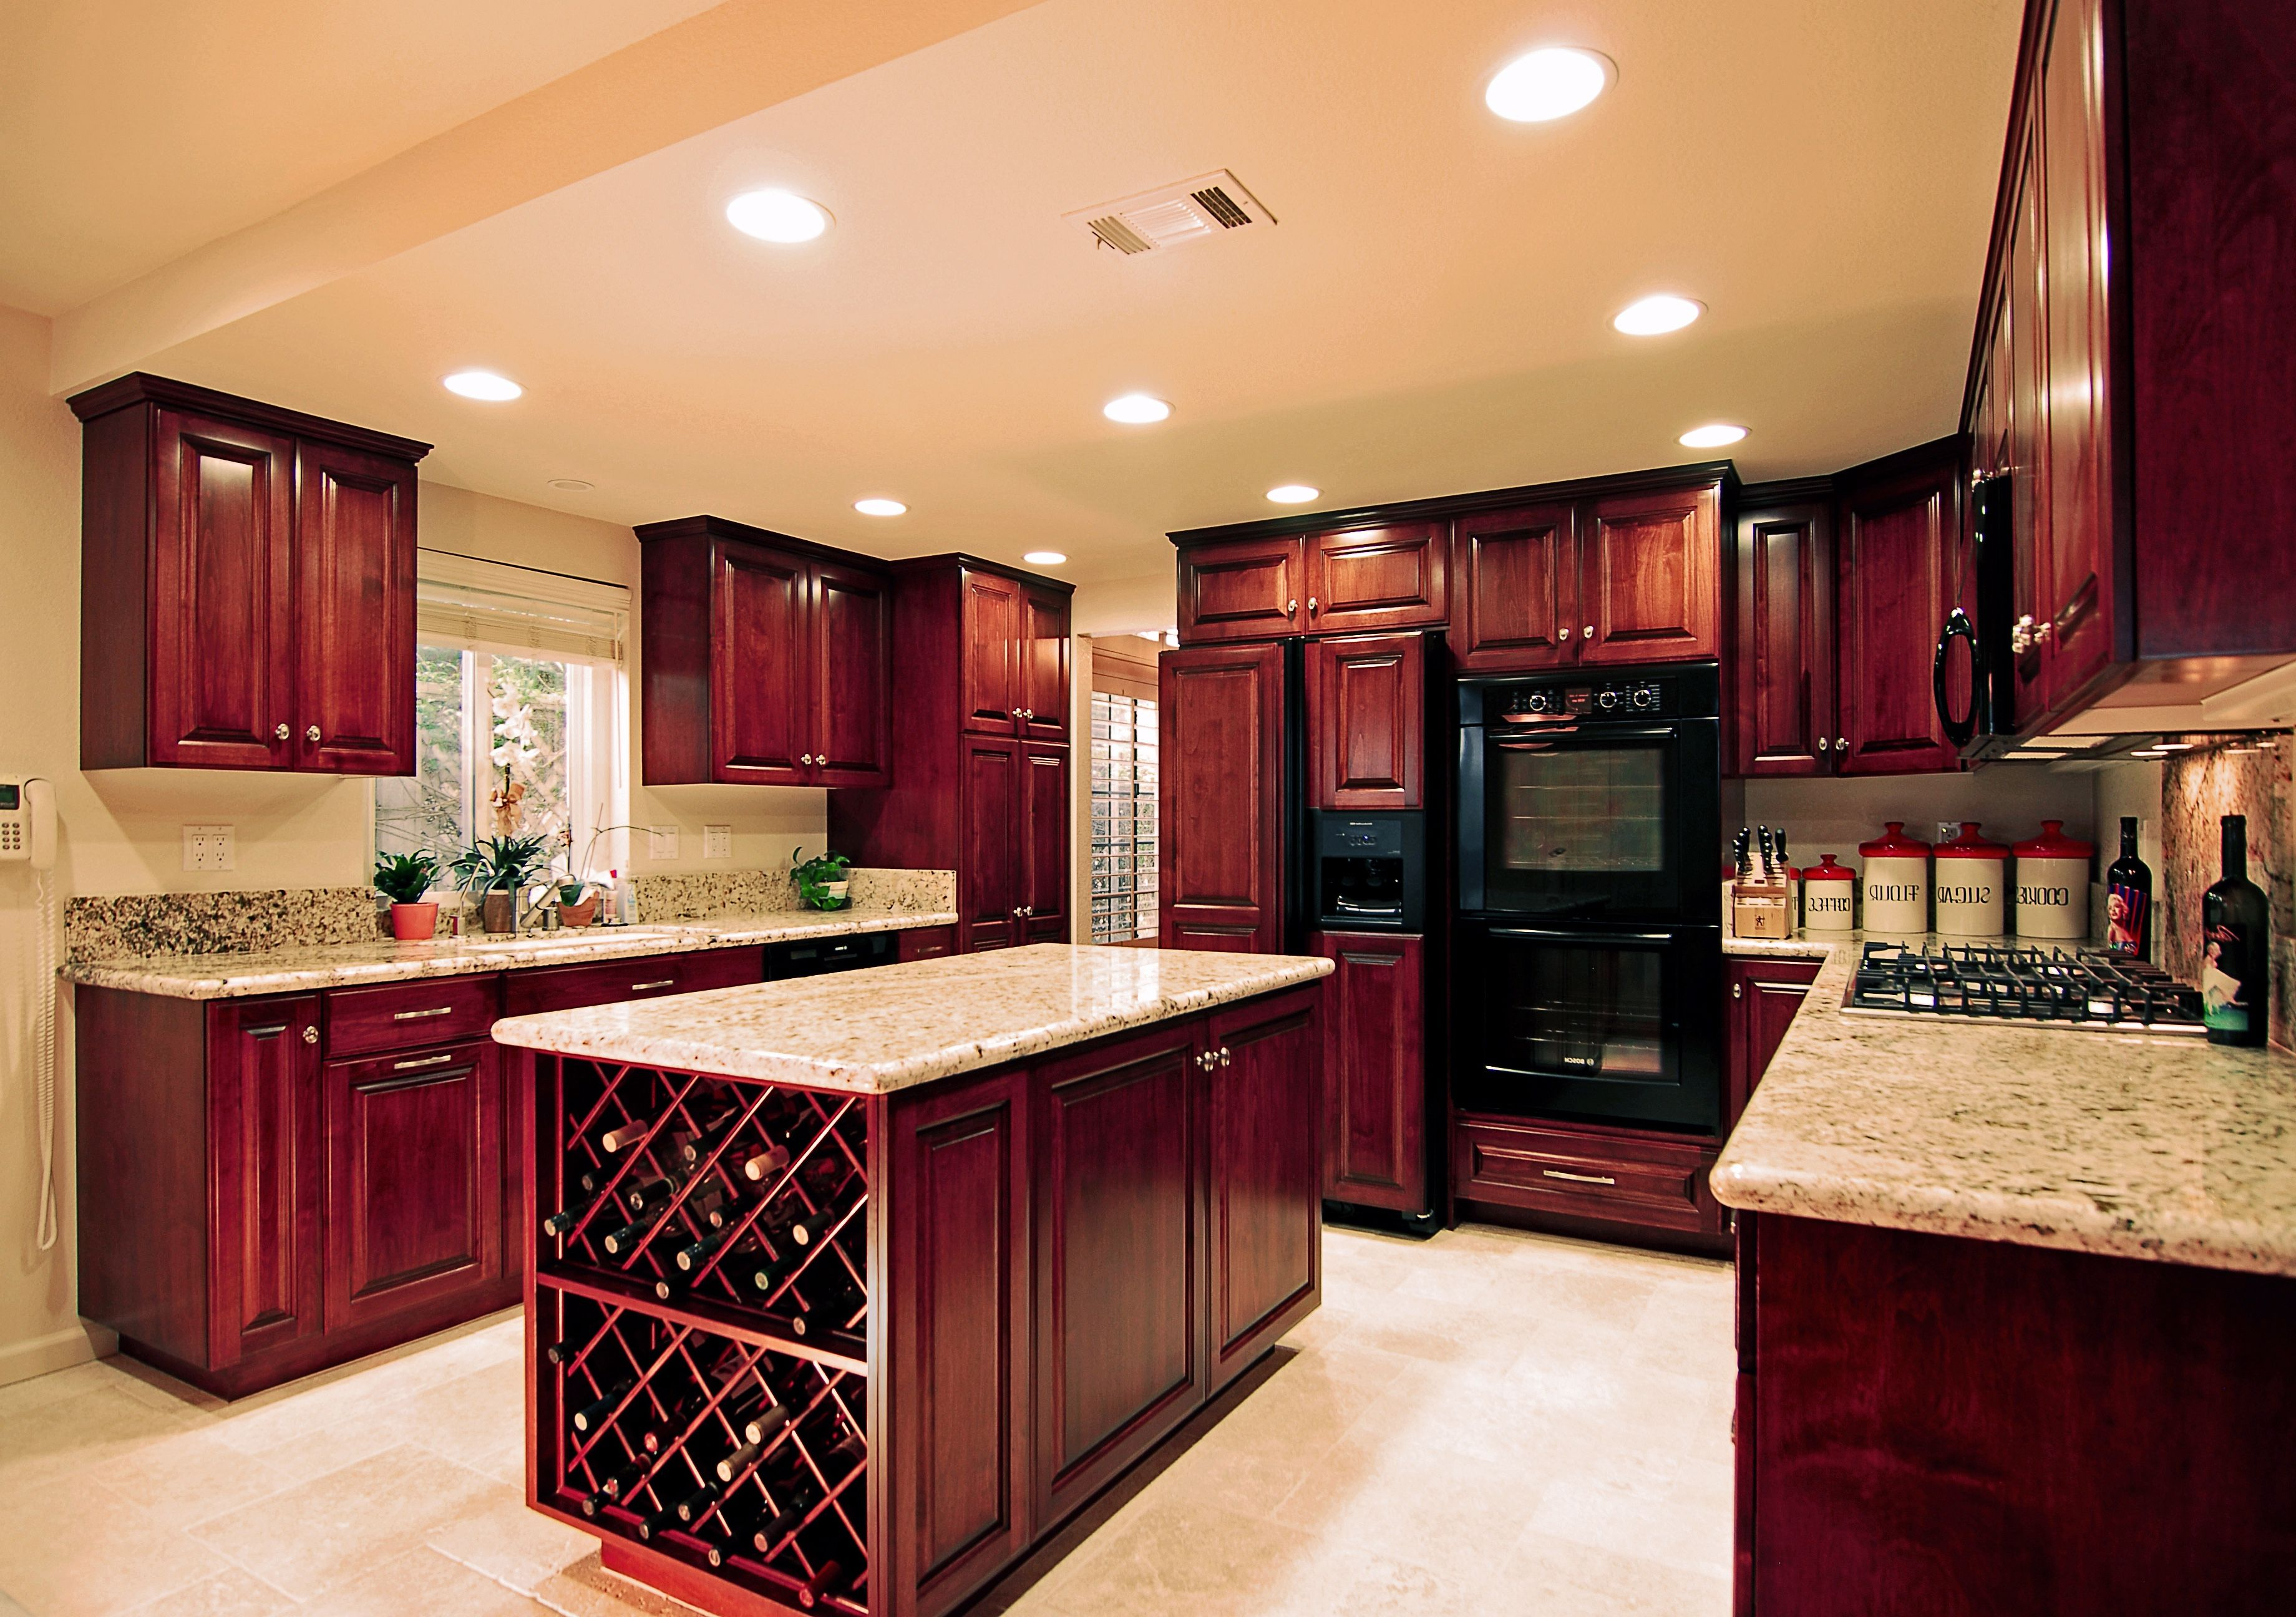 Kitchen Flooring With Cherry Cabinets Elegant Classic Cherry Kitchen Cab Painted Kitchen Cabinets Colors Cherry Cabinets Kitchen Kitchen Cabinets On A Budget